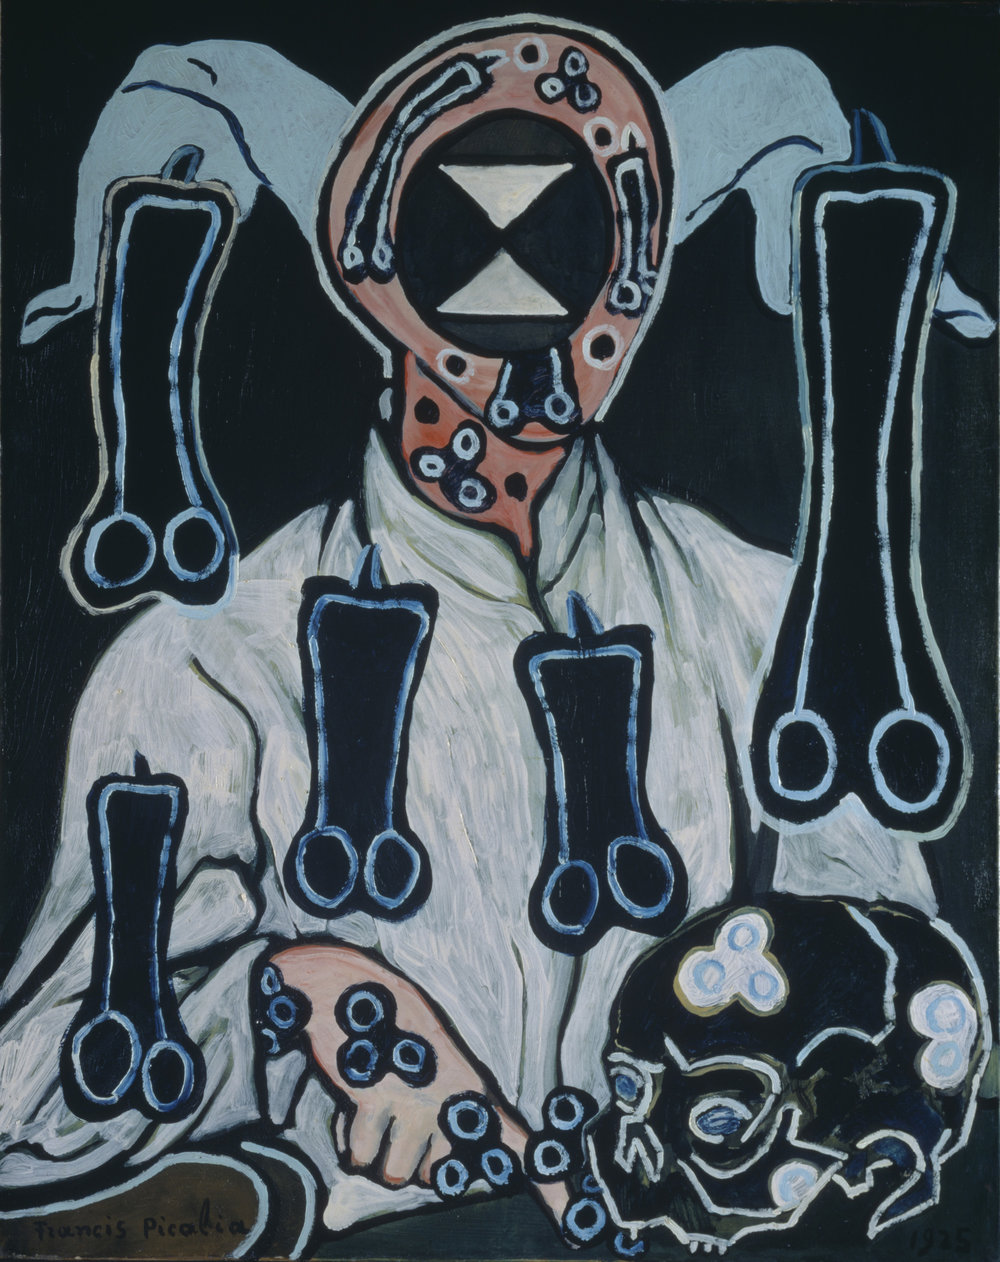 Francis Picabia (French, 1879–1953). Portrait d'un docteur (Portrait of a Doctor). 1935/c. 1938. Oil on canvas